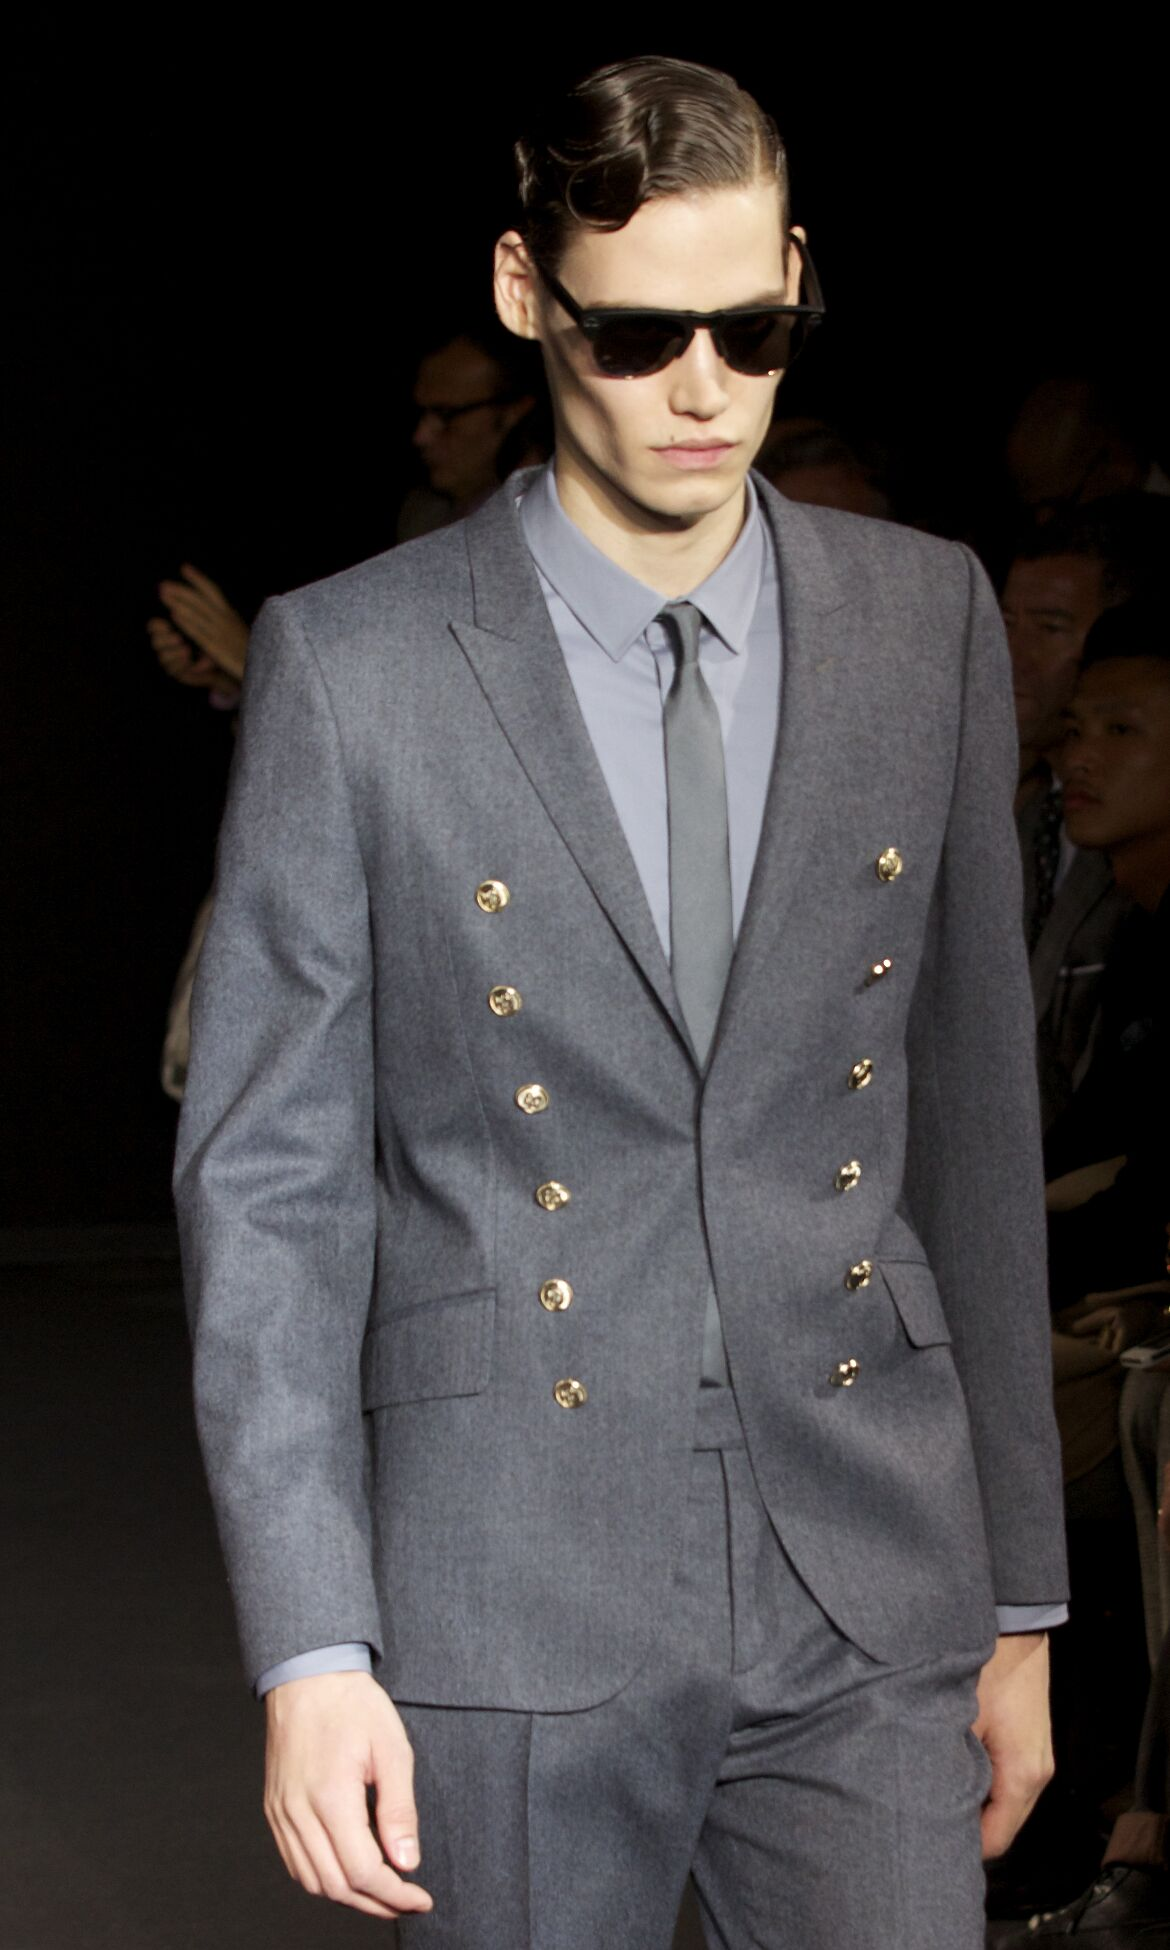 Catwalk Les Hommes Fashion Show Winter 2013 Menswear